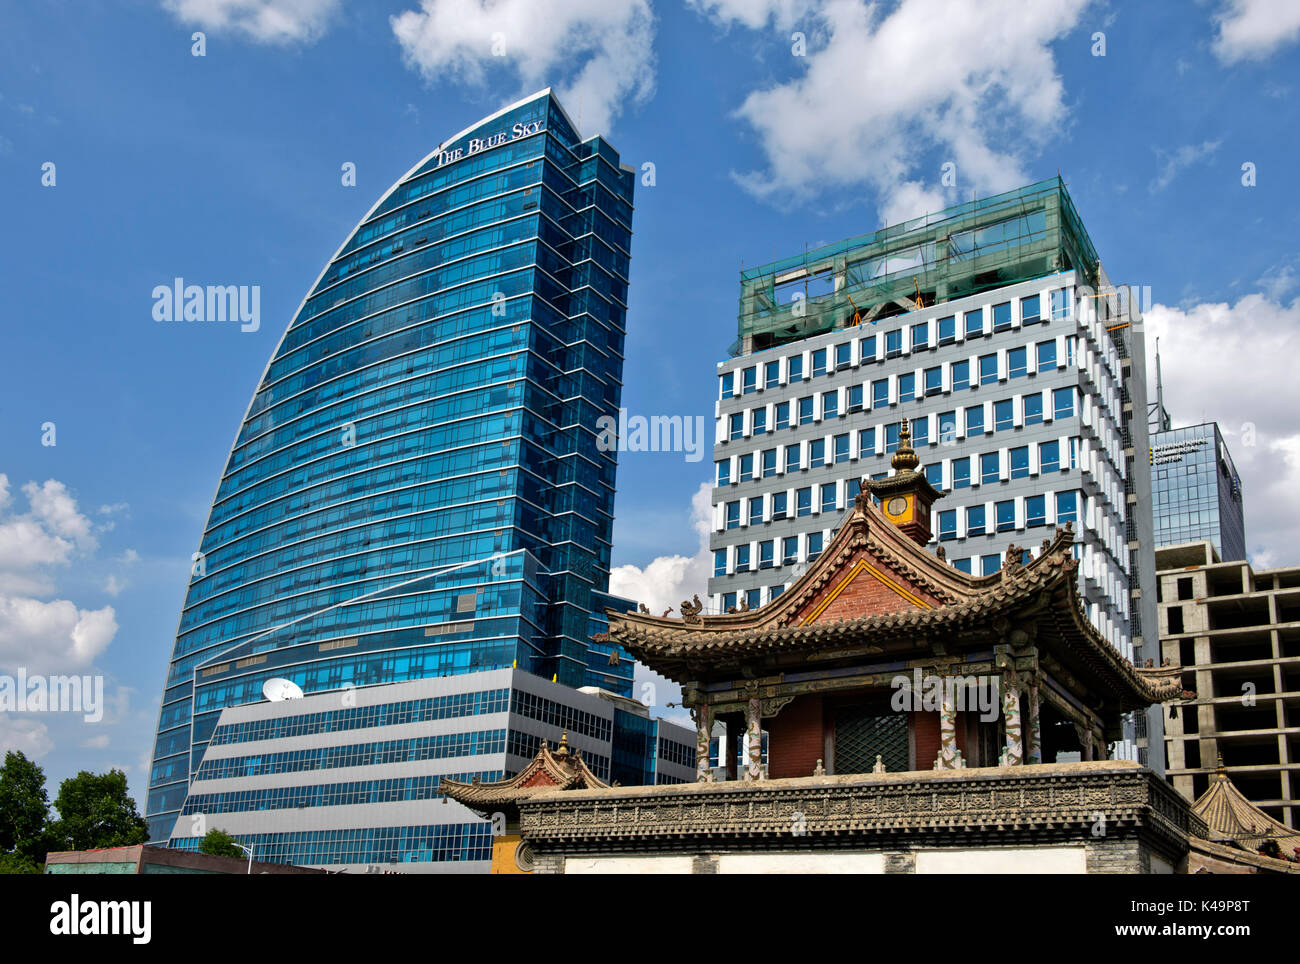 The Modern Hotel The Blue Sky, Ulaanbaatar, Mongolia Stock Photo